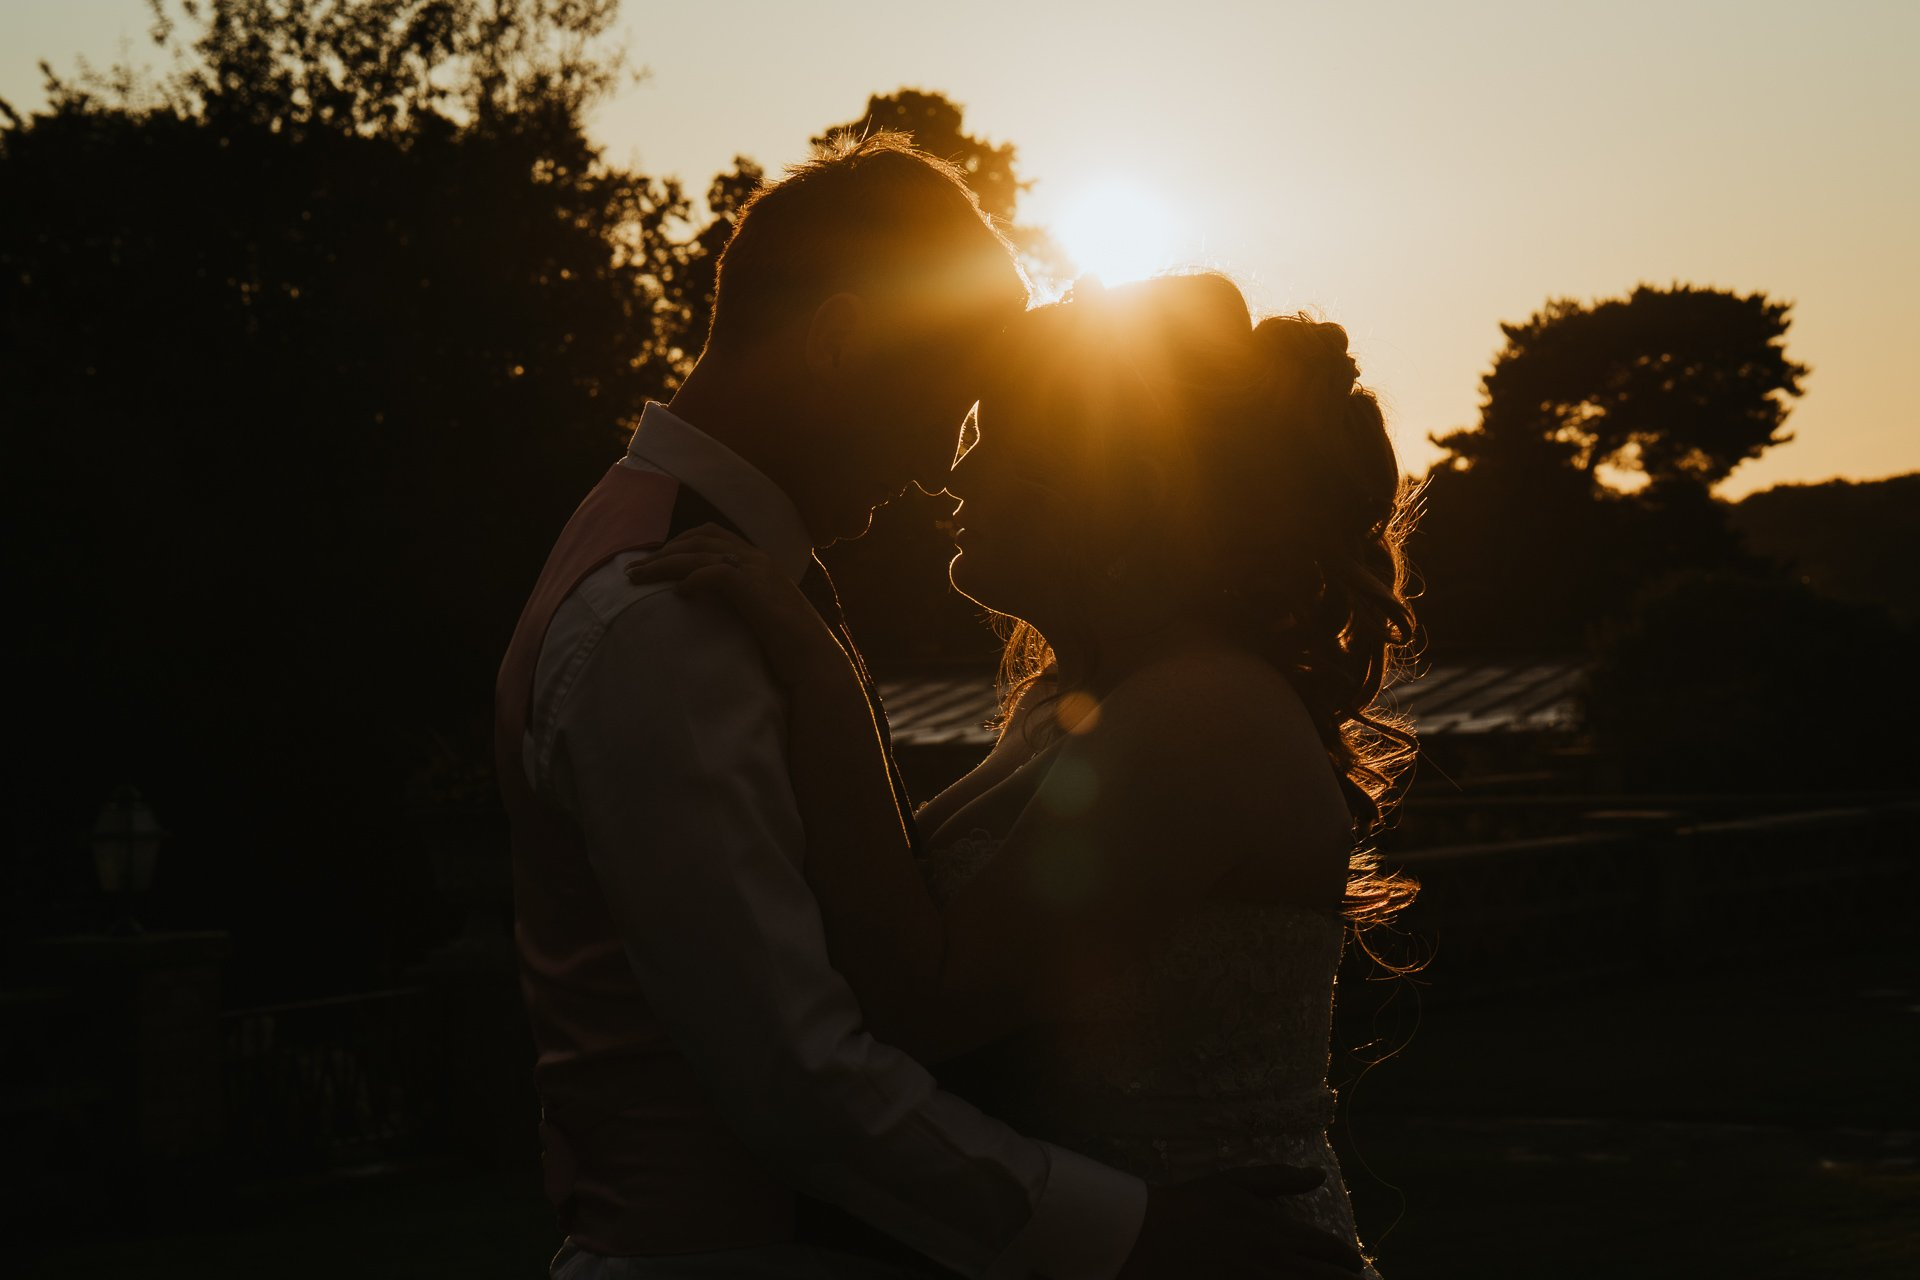 Bride and Groom kissing at sunset during golden hour